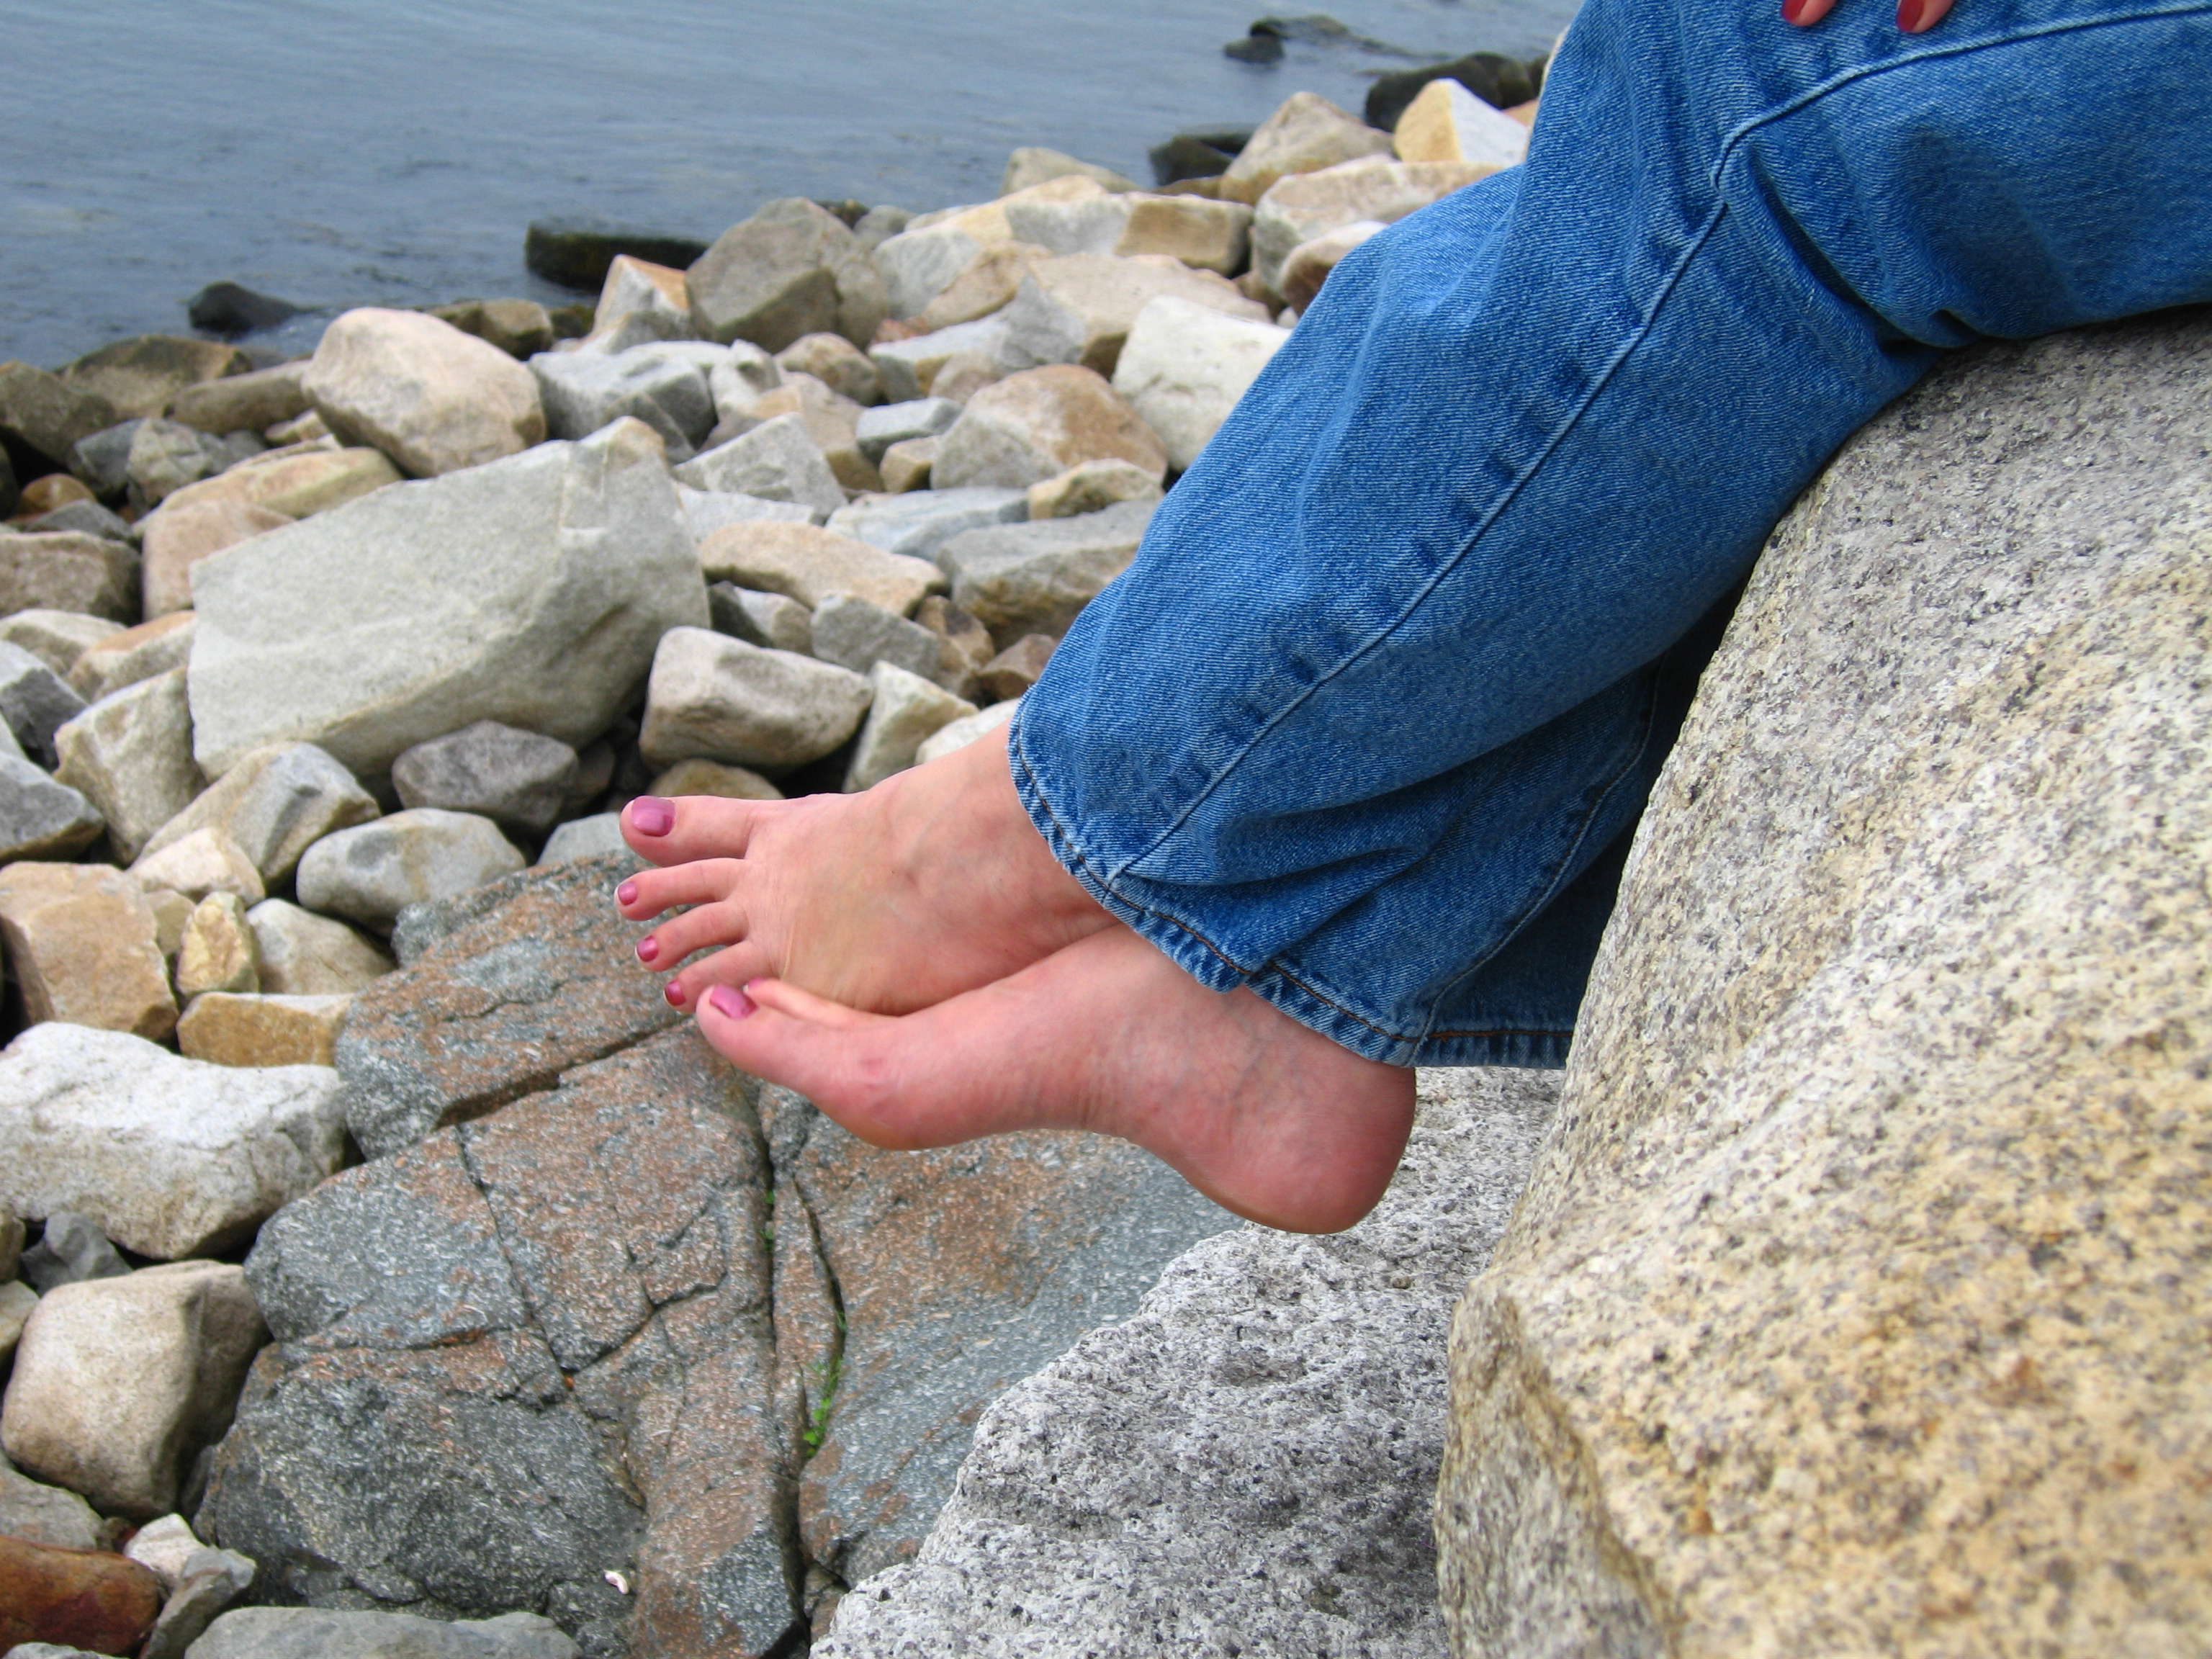 Barefoot in Massachusetts